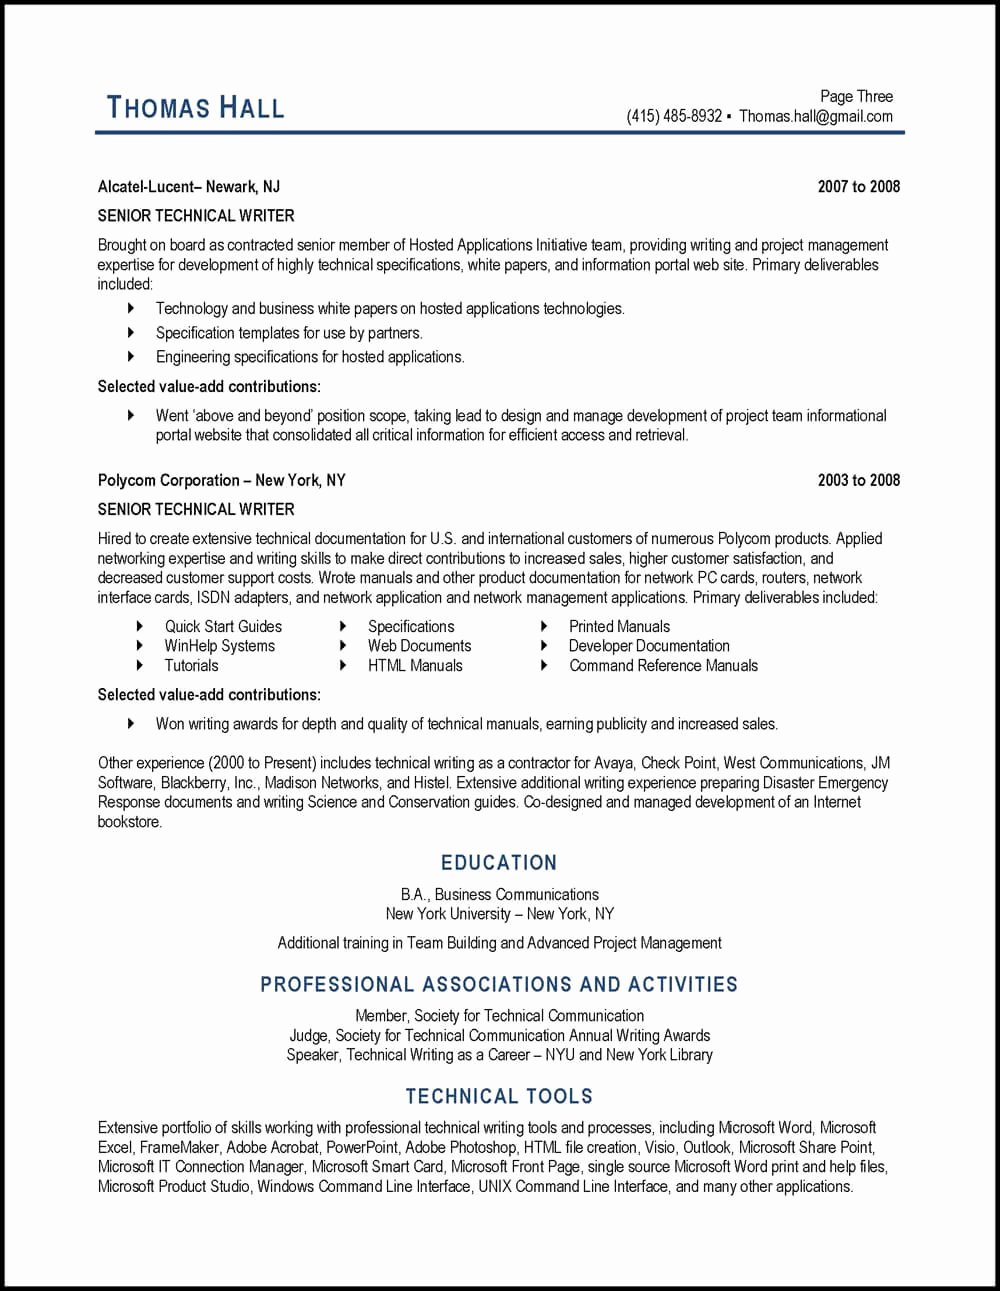 Technical Writer Resume Examples Elegant Technical Writer Resume Example and Expert Tips